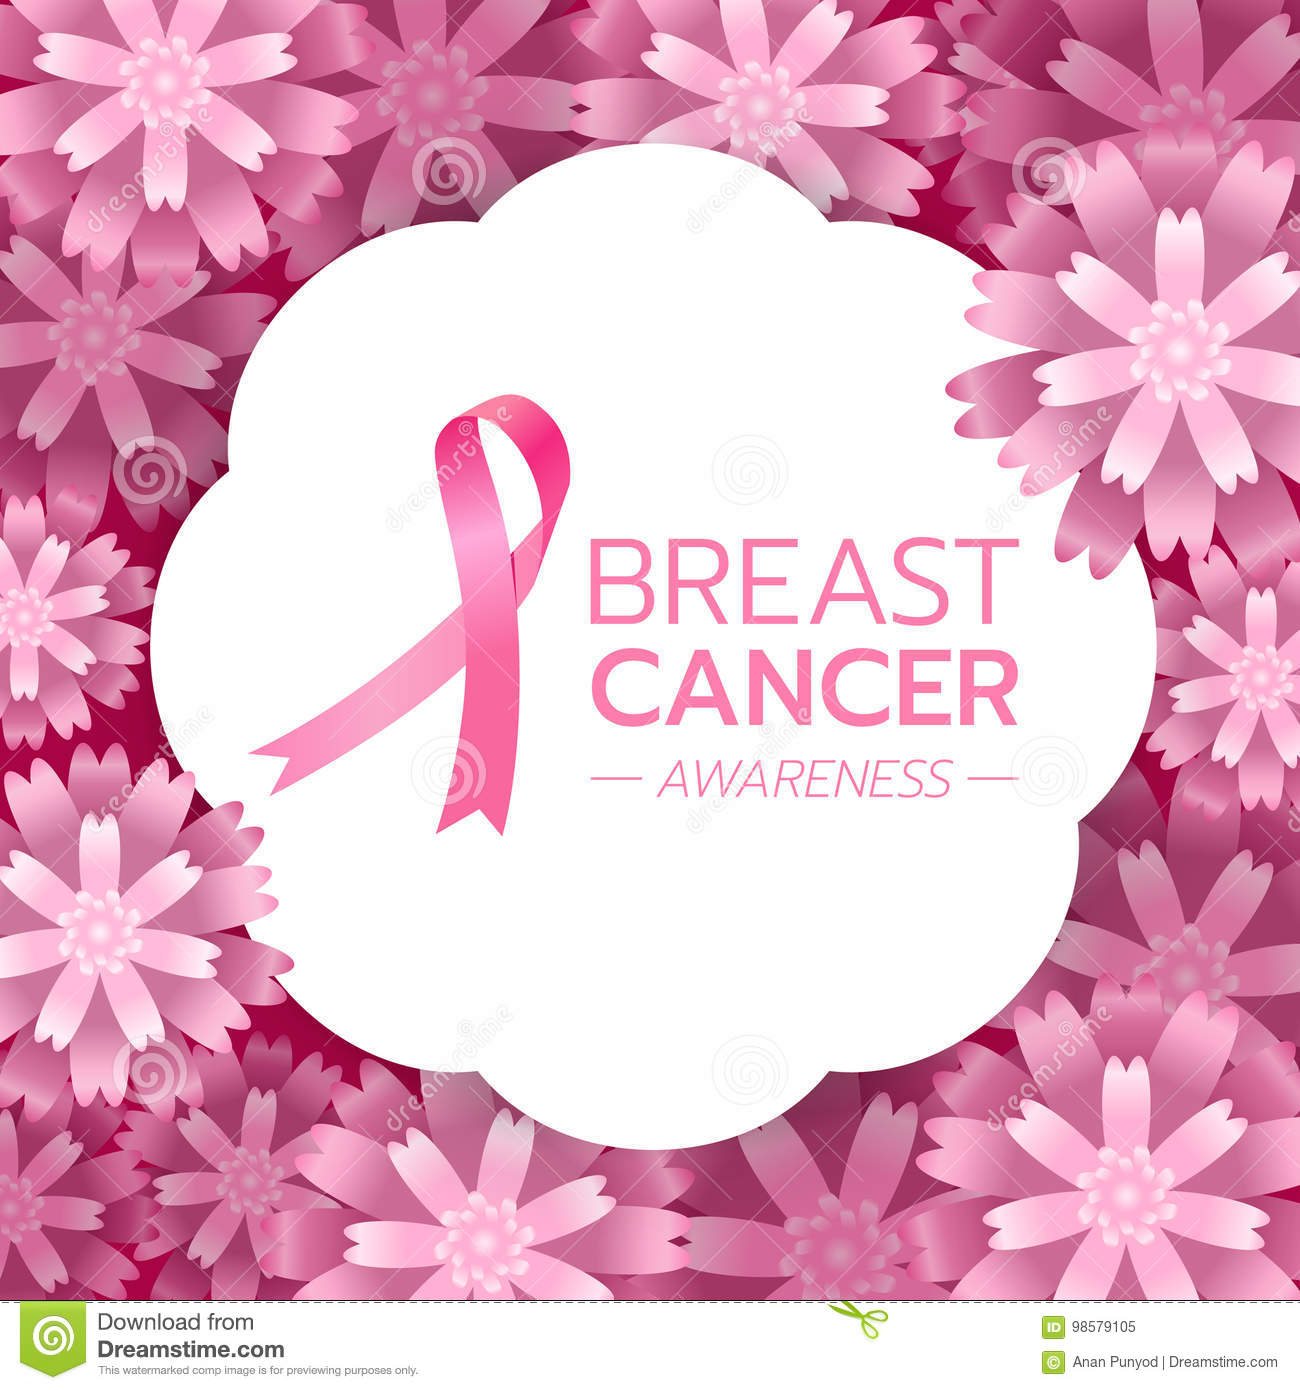 Pink ribbon sign and Breast Cancer AWARENESS text on white circle banner and pink abstract flower background vector design